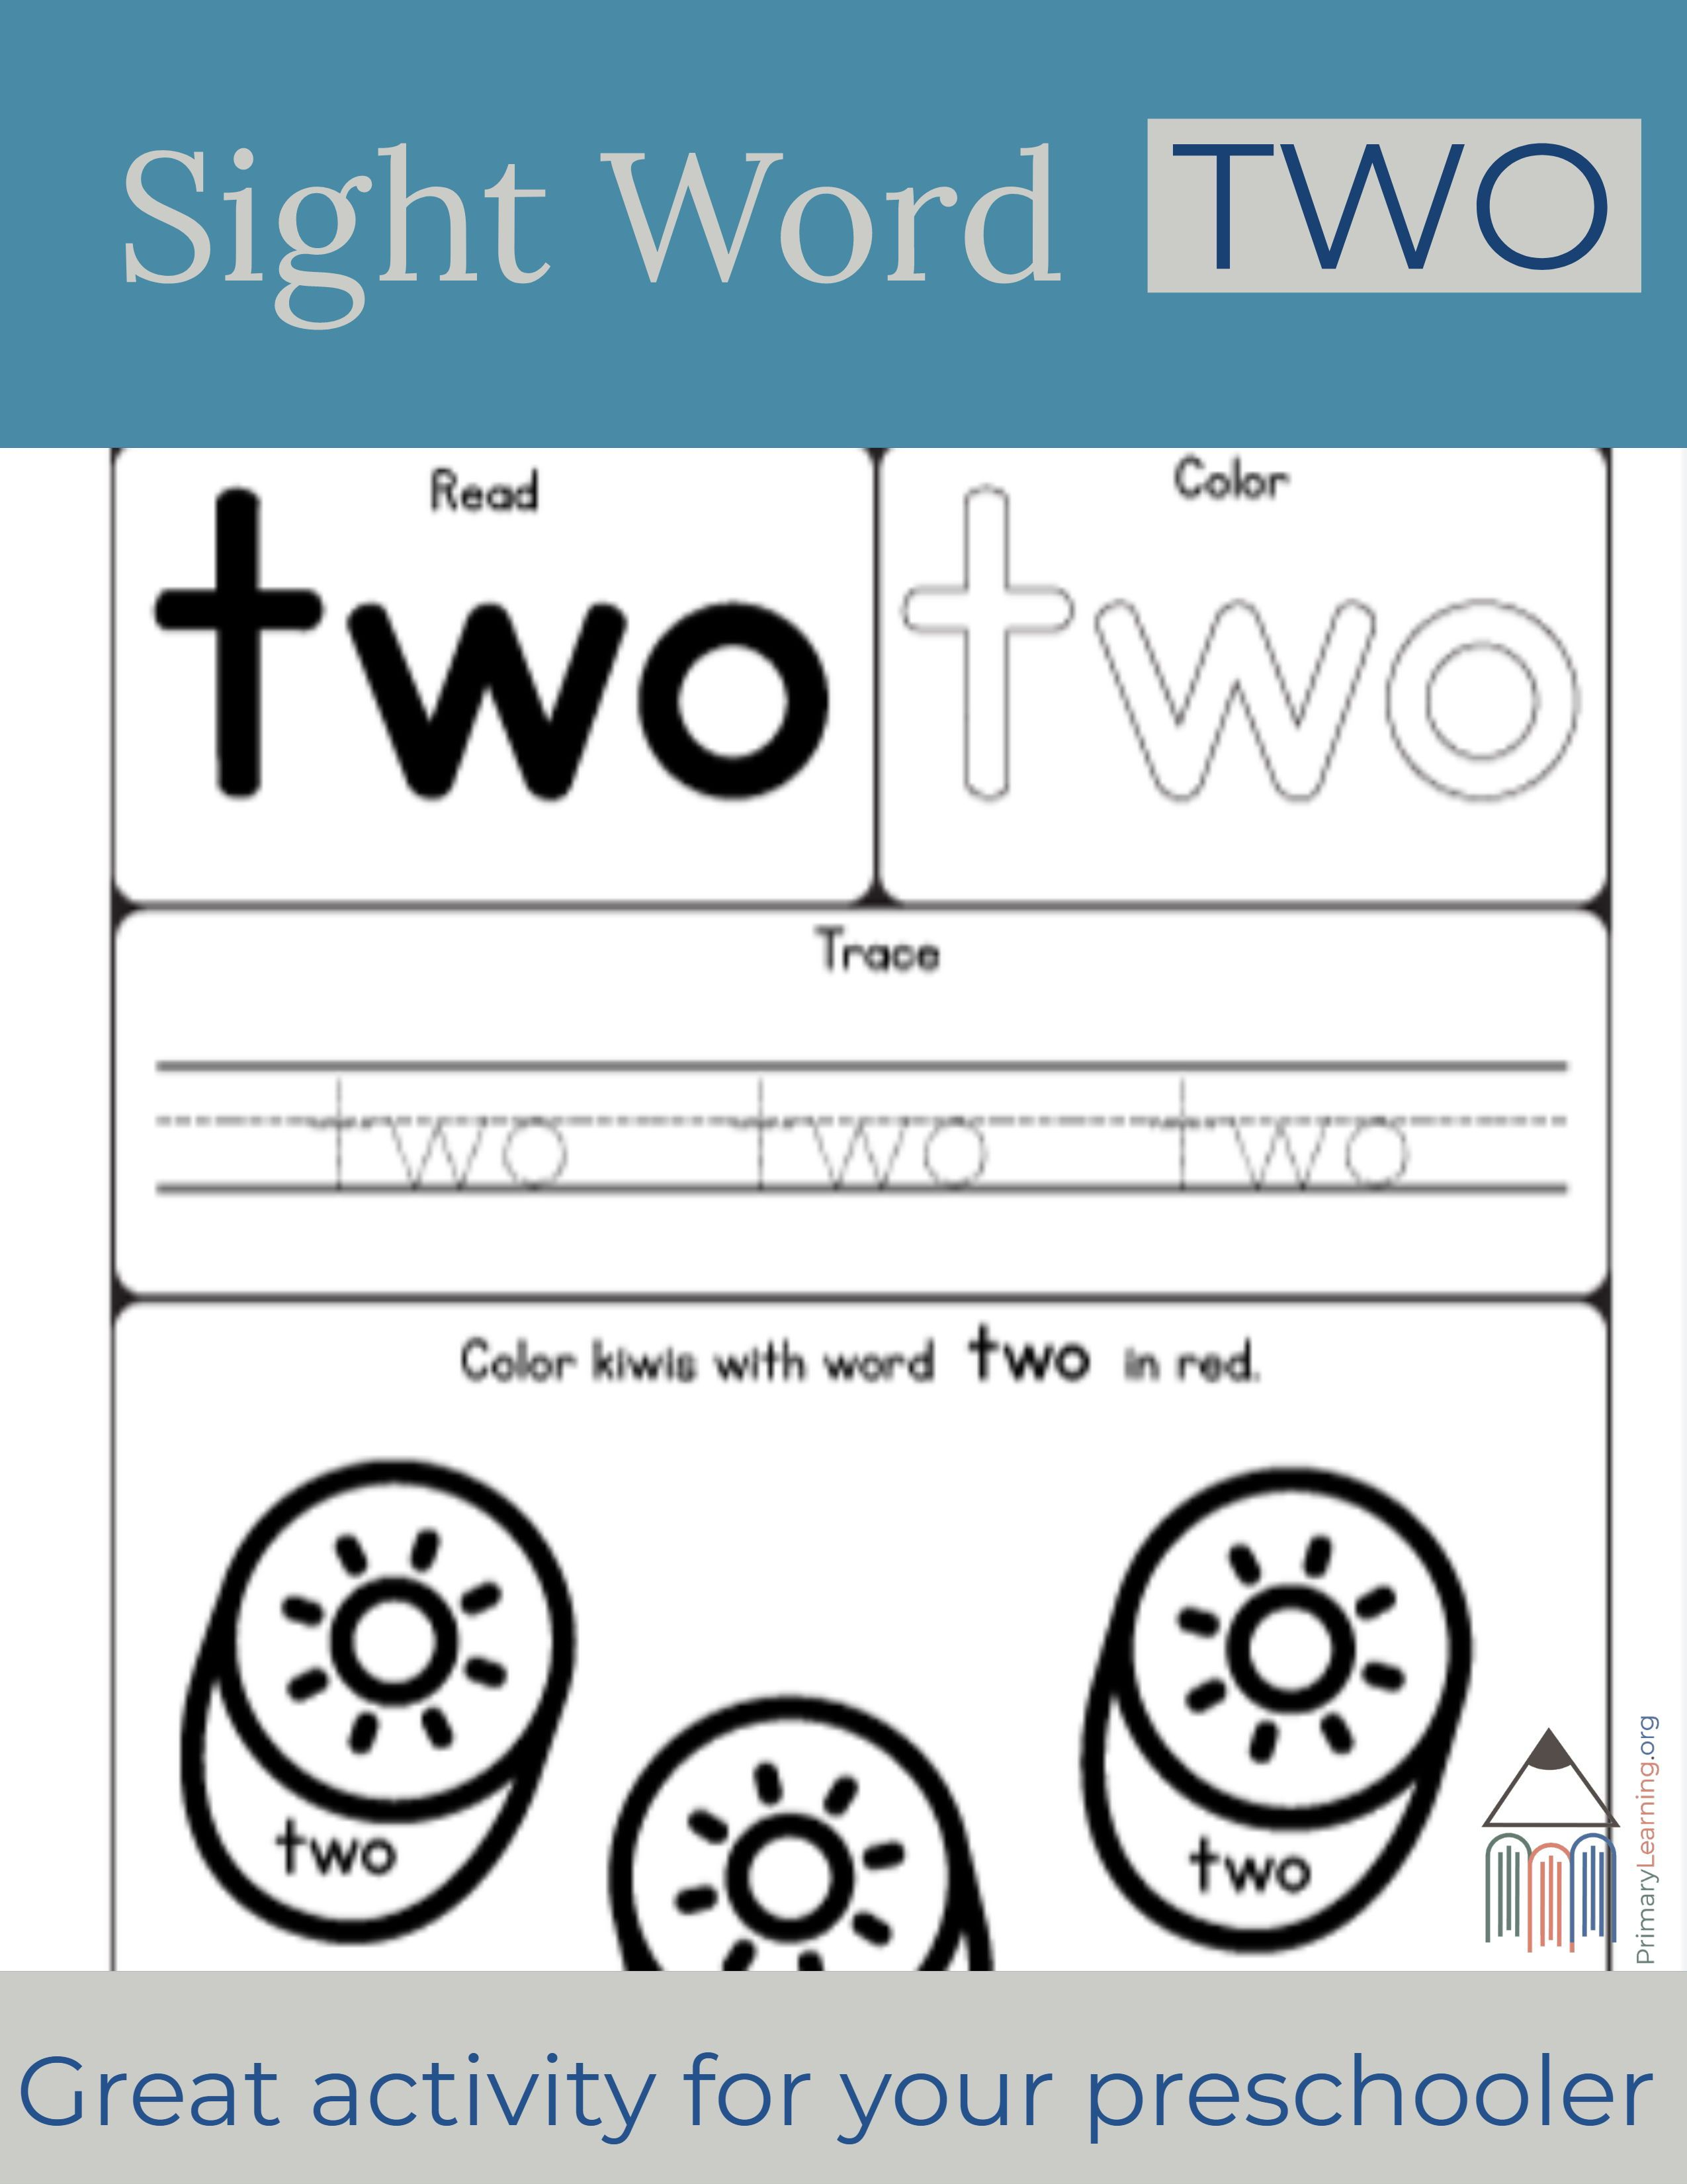 Sight Word Two Worksheet